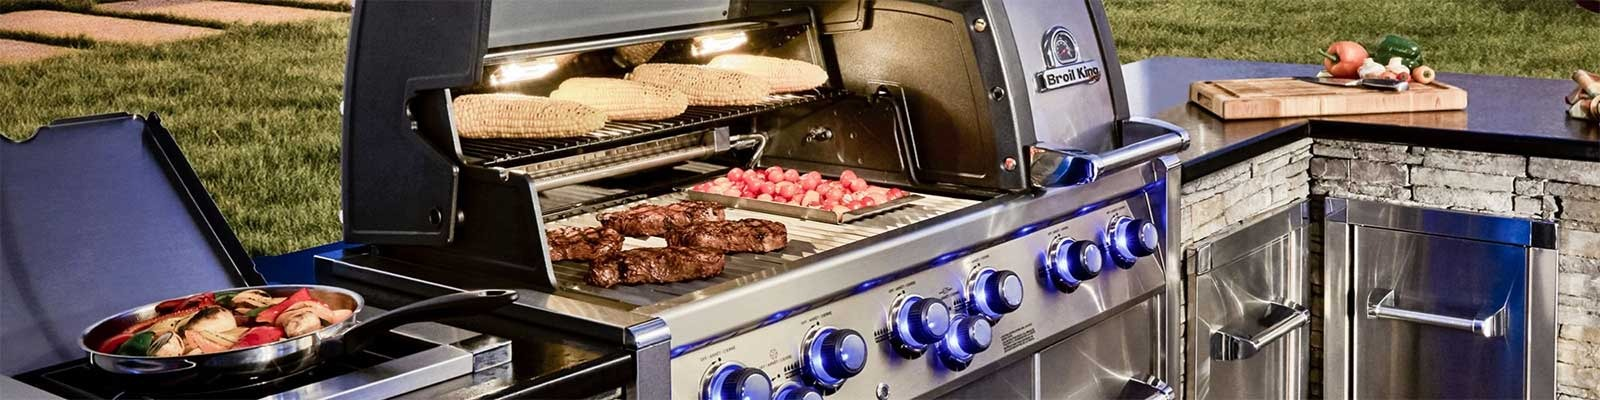 Broil King: la passione per il Barbecue